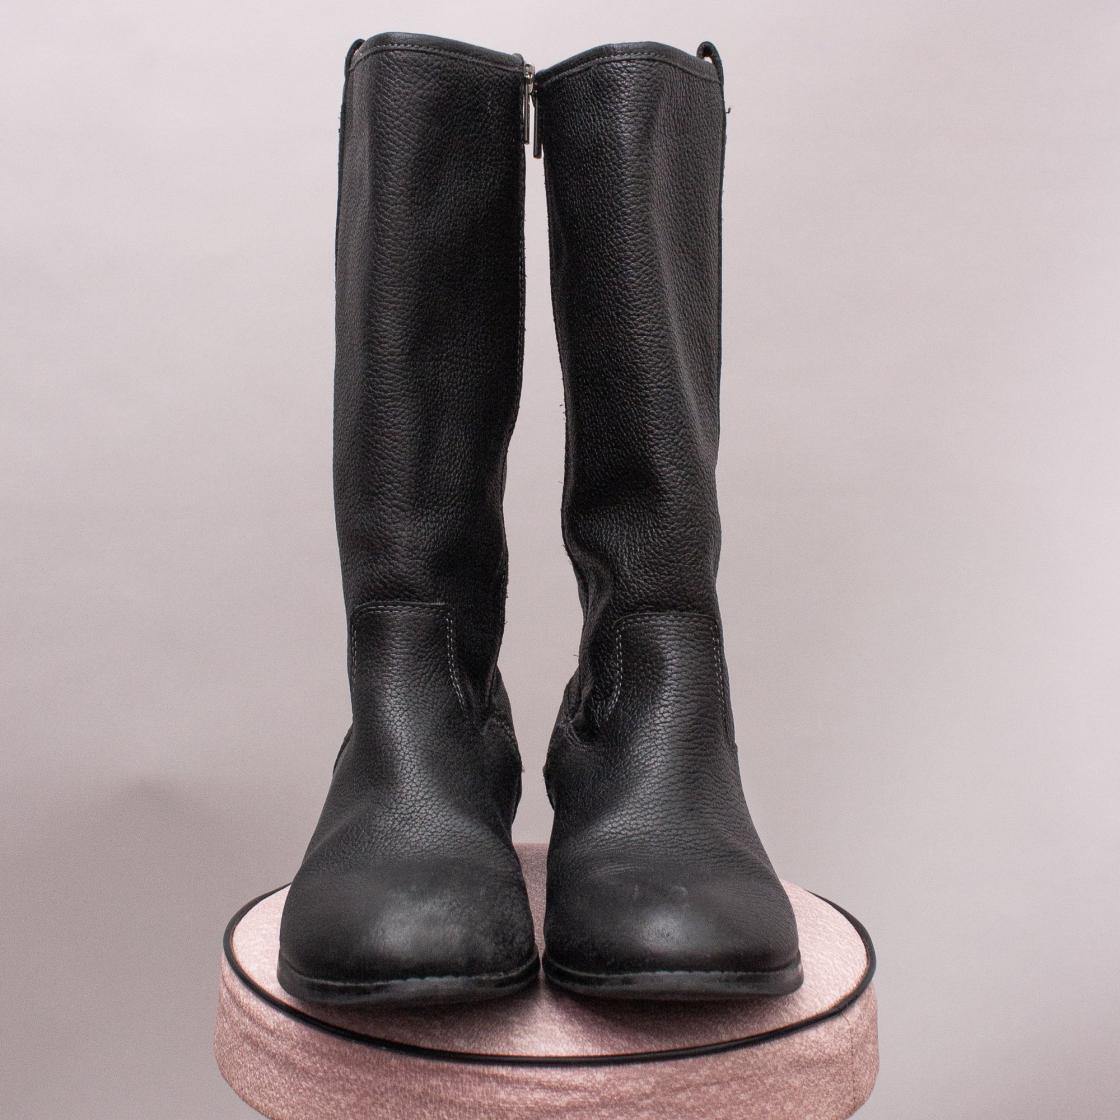 Country Road Black Leather Boots - Size EU 36